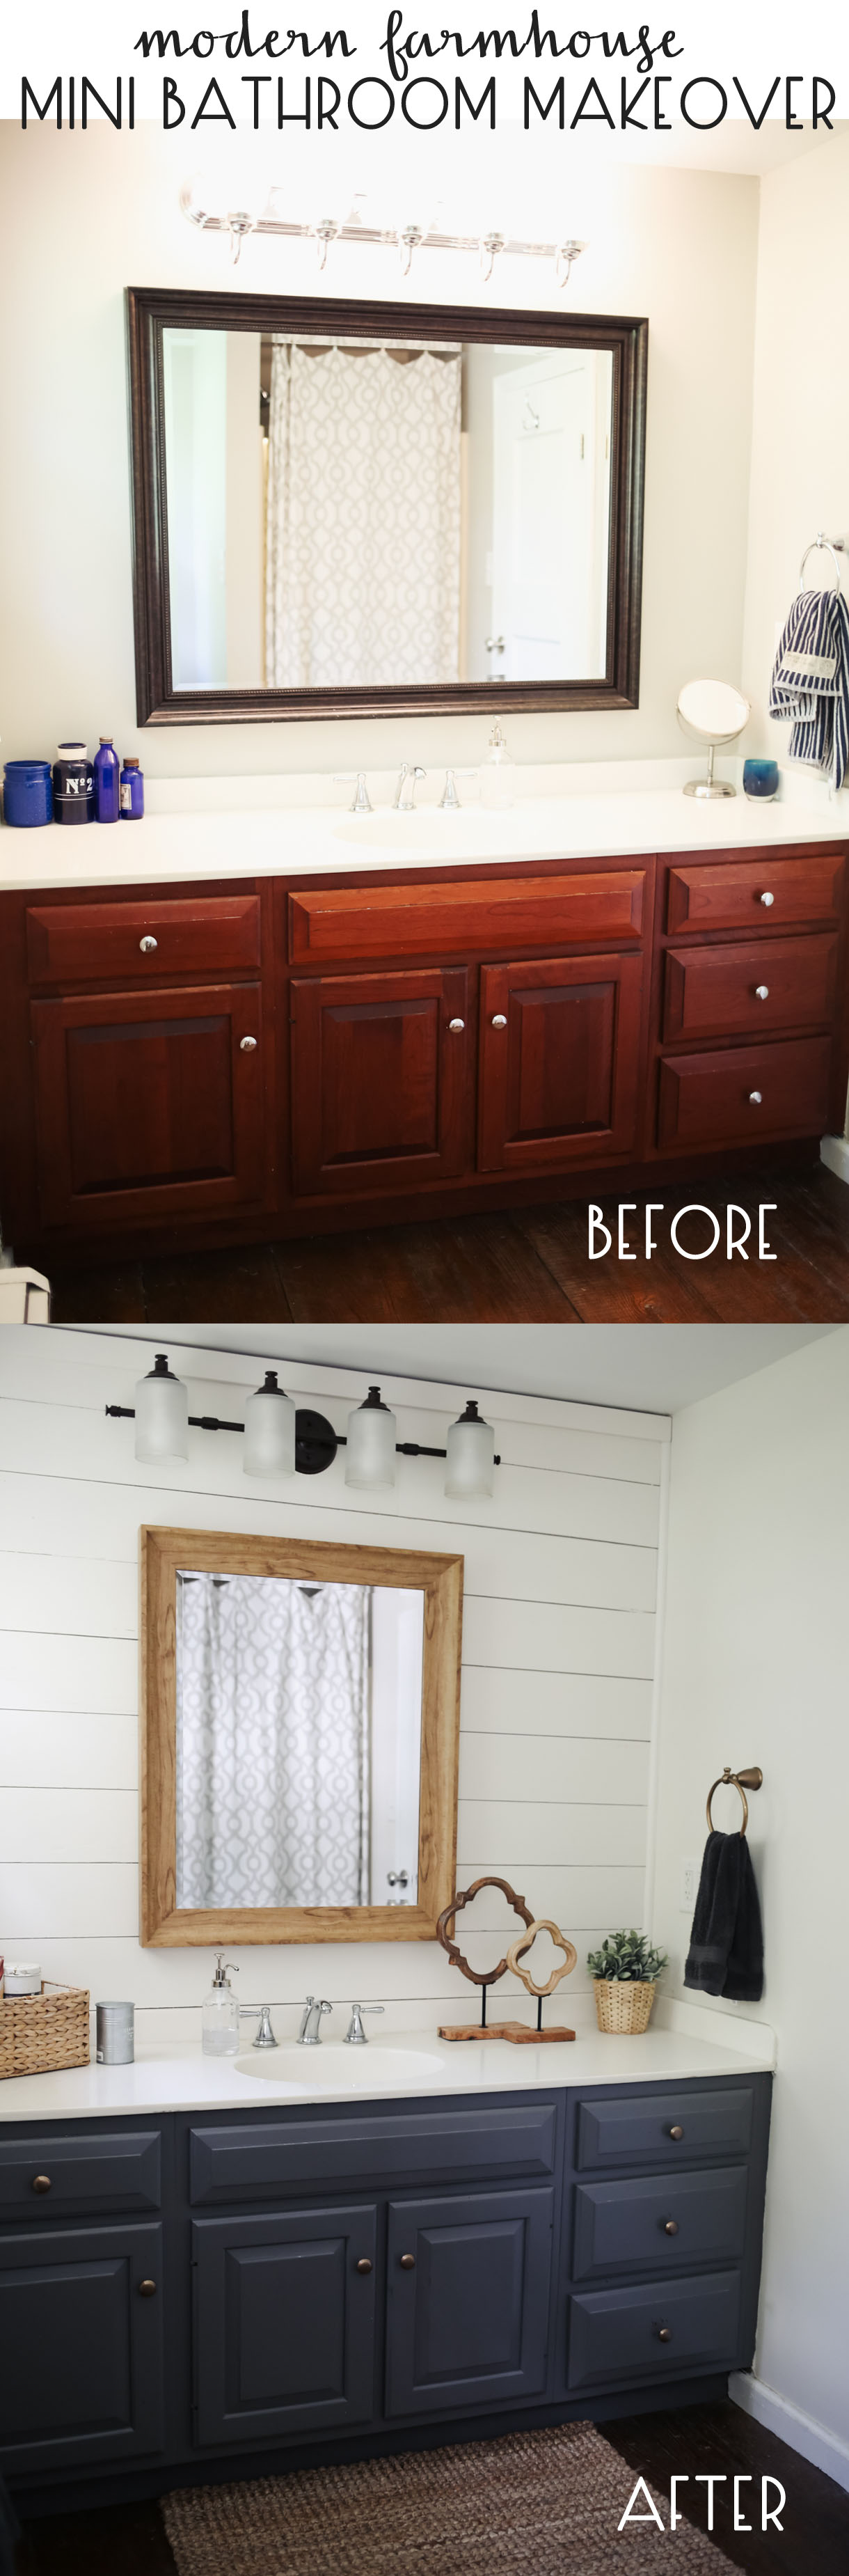 Farmhouse Style Mini Bathroom Makeover Dress Cori Lynn - Mini bathroom makeover